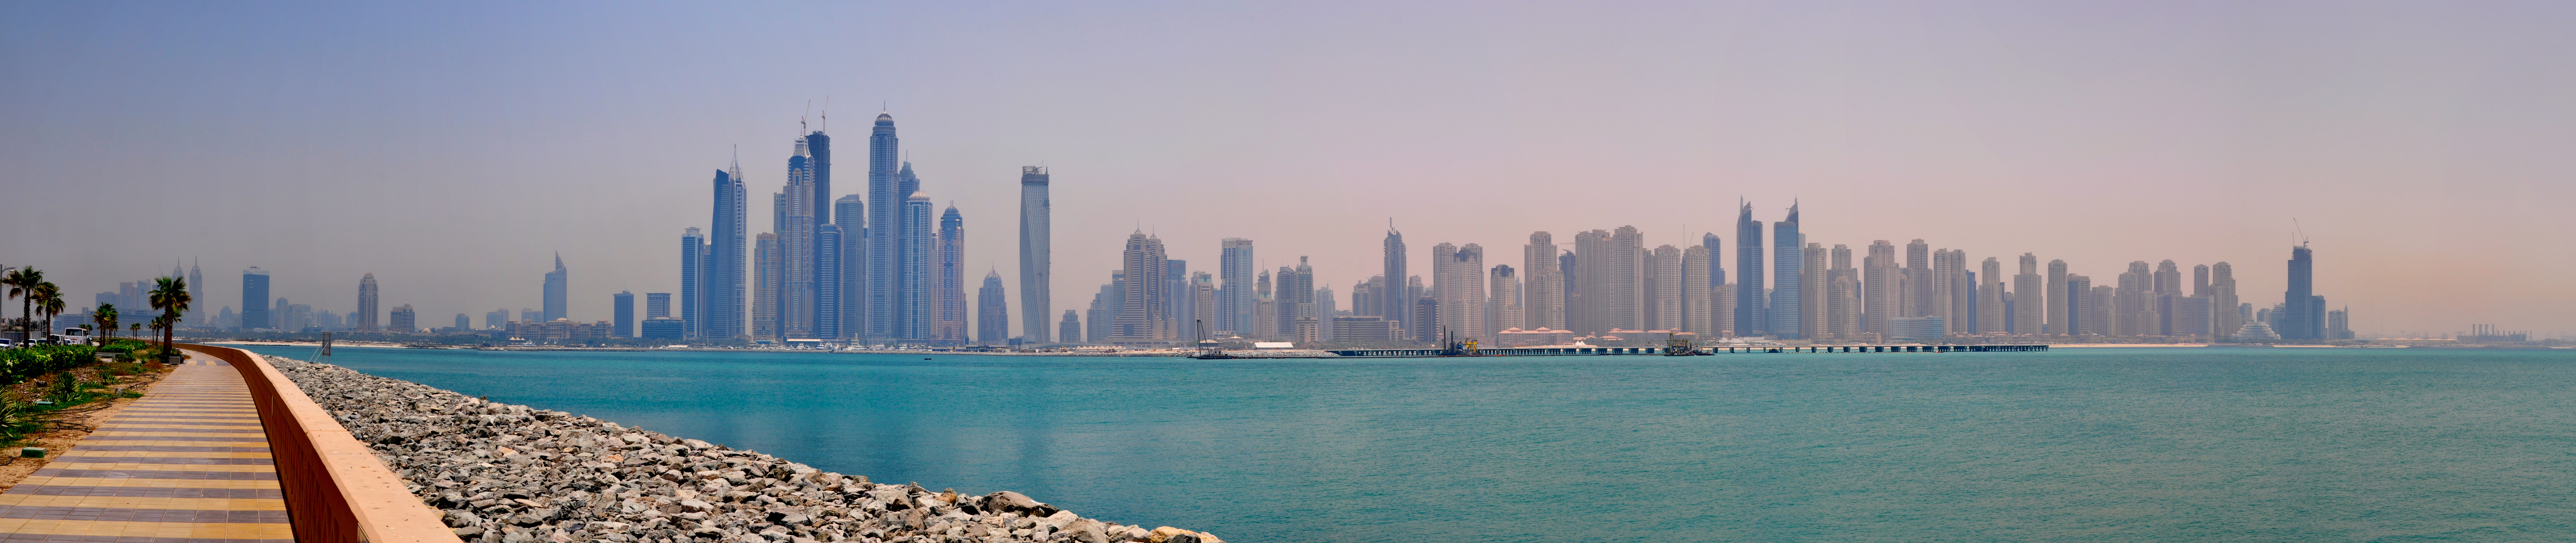 Skyline of Dubai, capital of the Emirate of Dubai, in the United Arab Emirates.